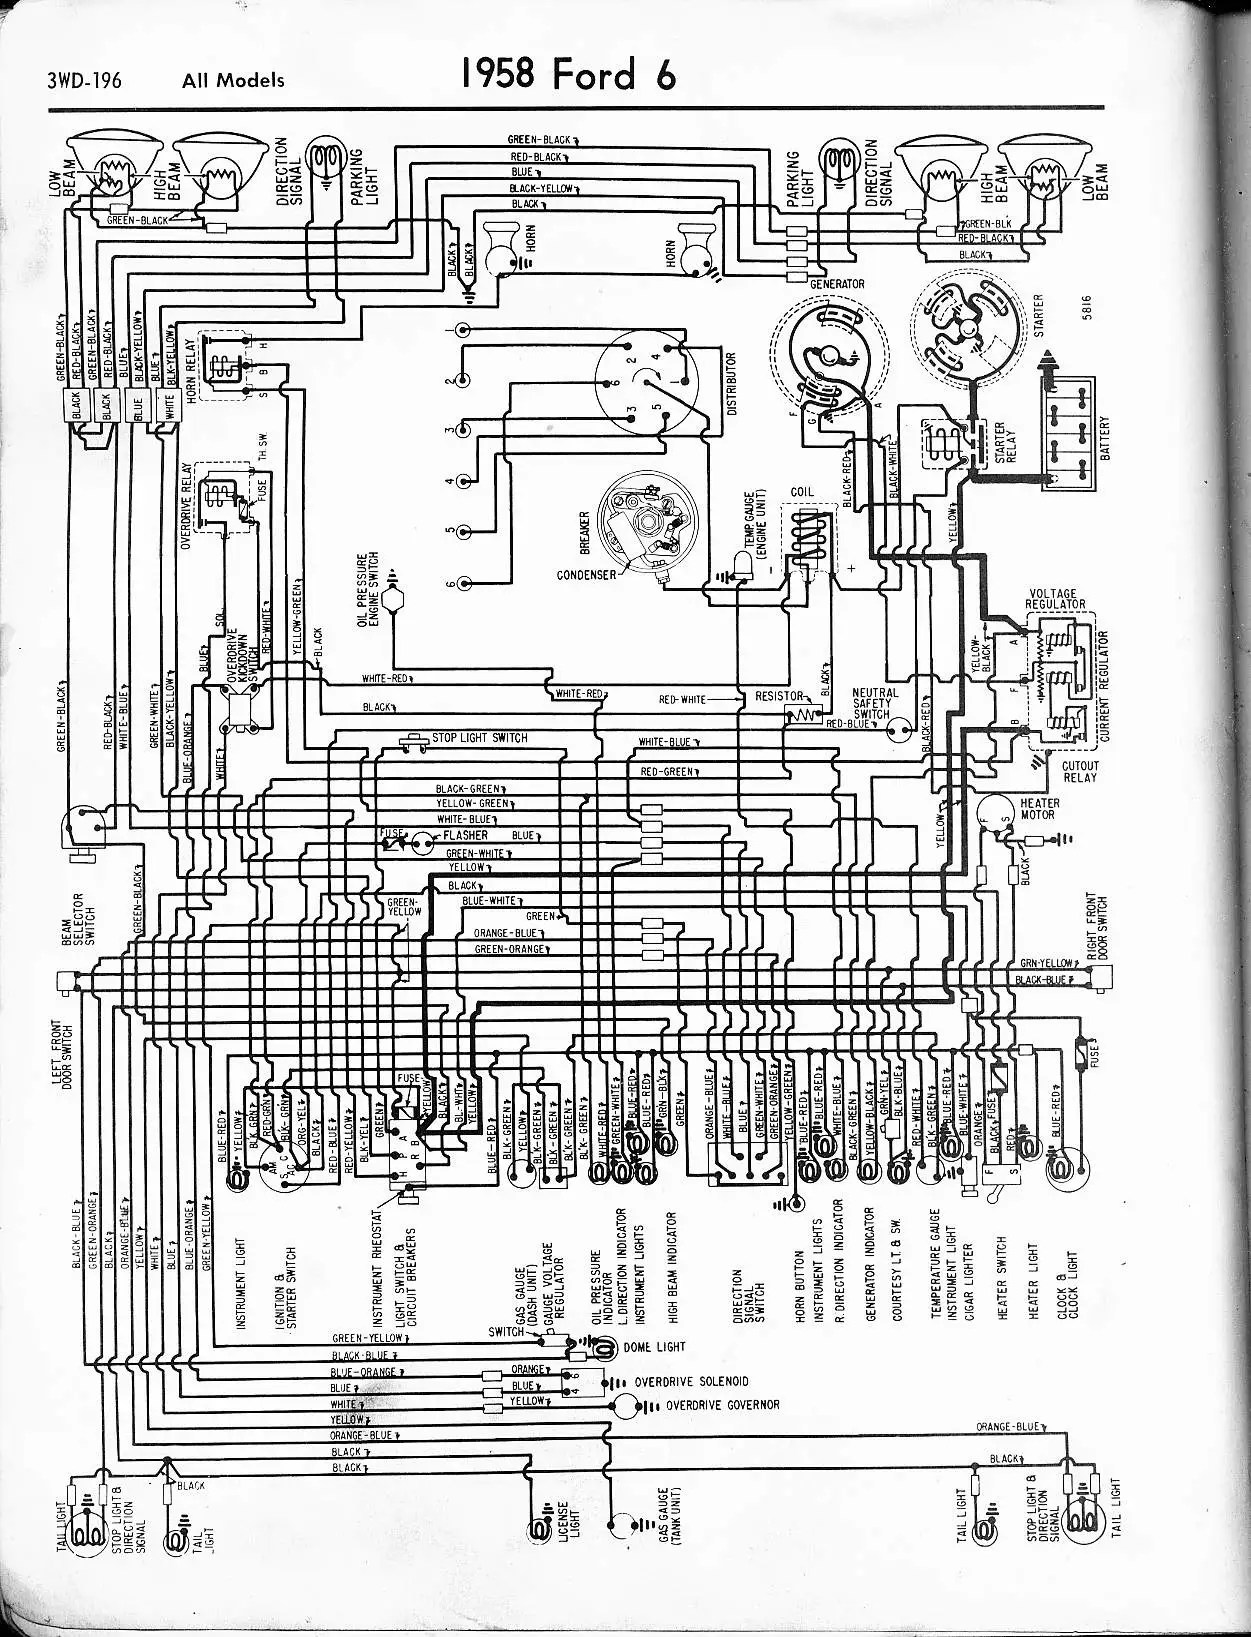 hight resolution of wiring diagram ford wiring diagram post57 65 ford wiring diagrams wiring diagram ford f150 wiring diagram